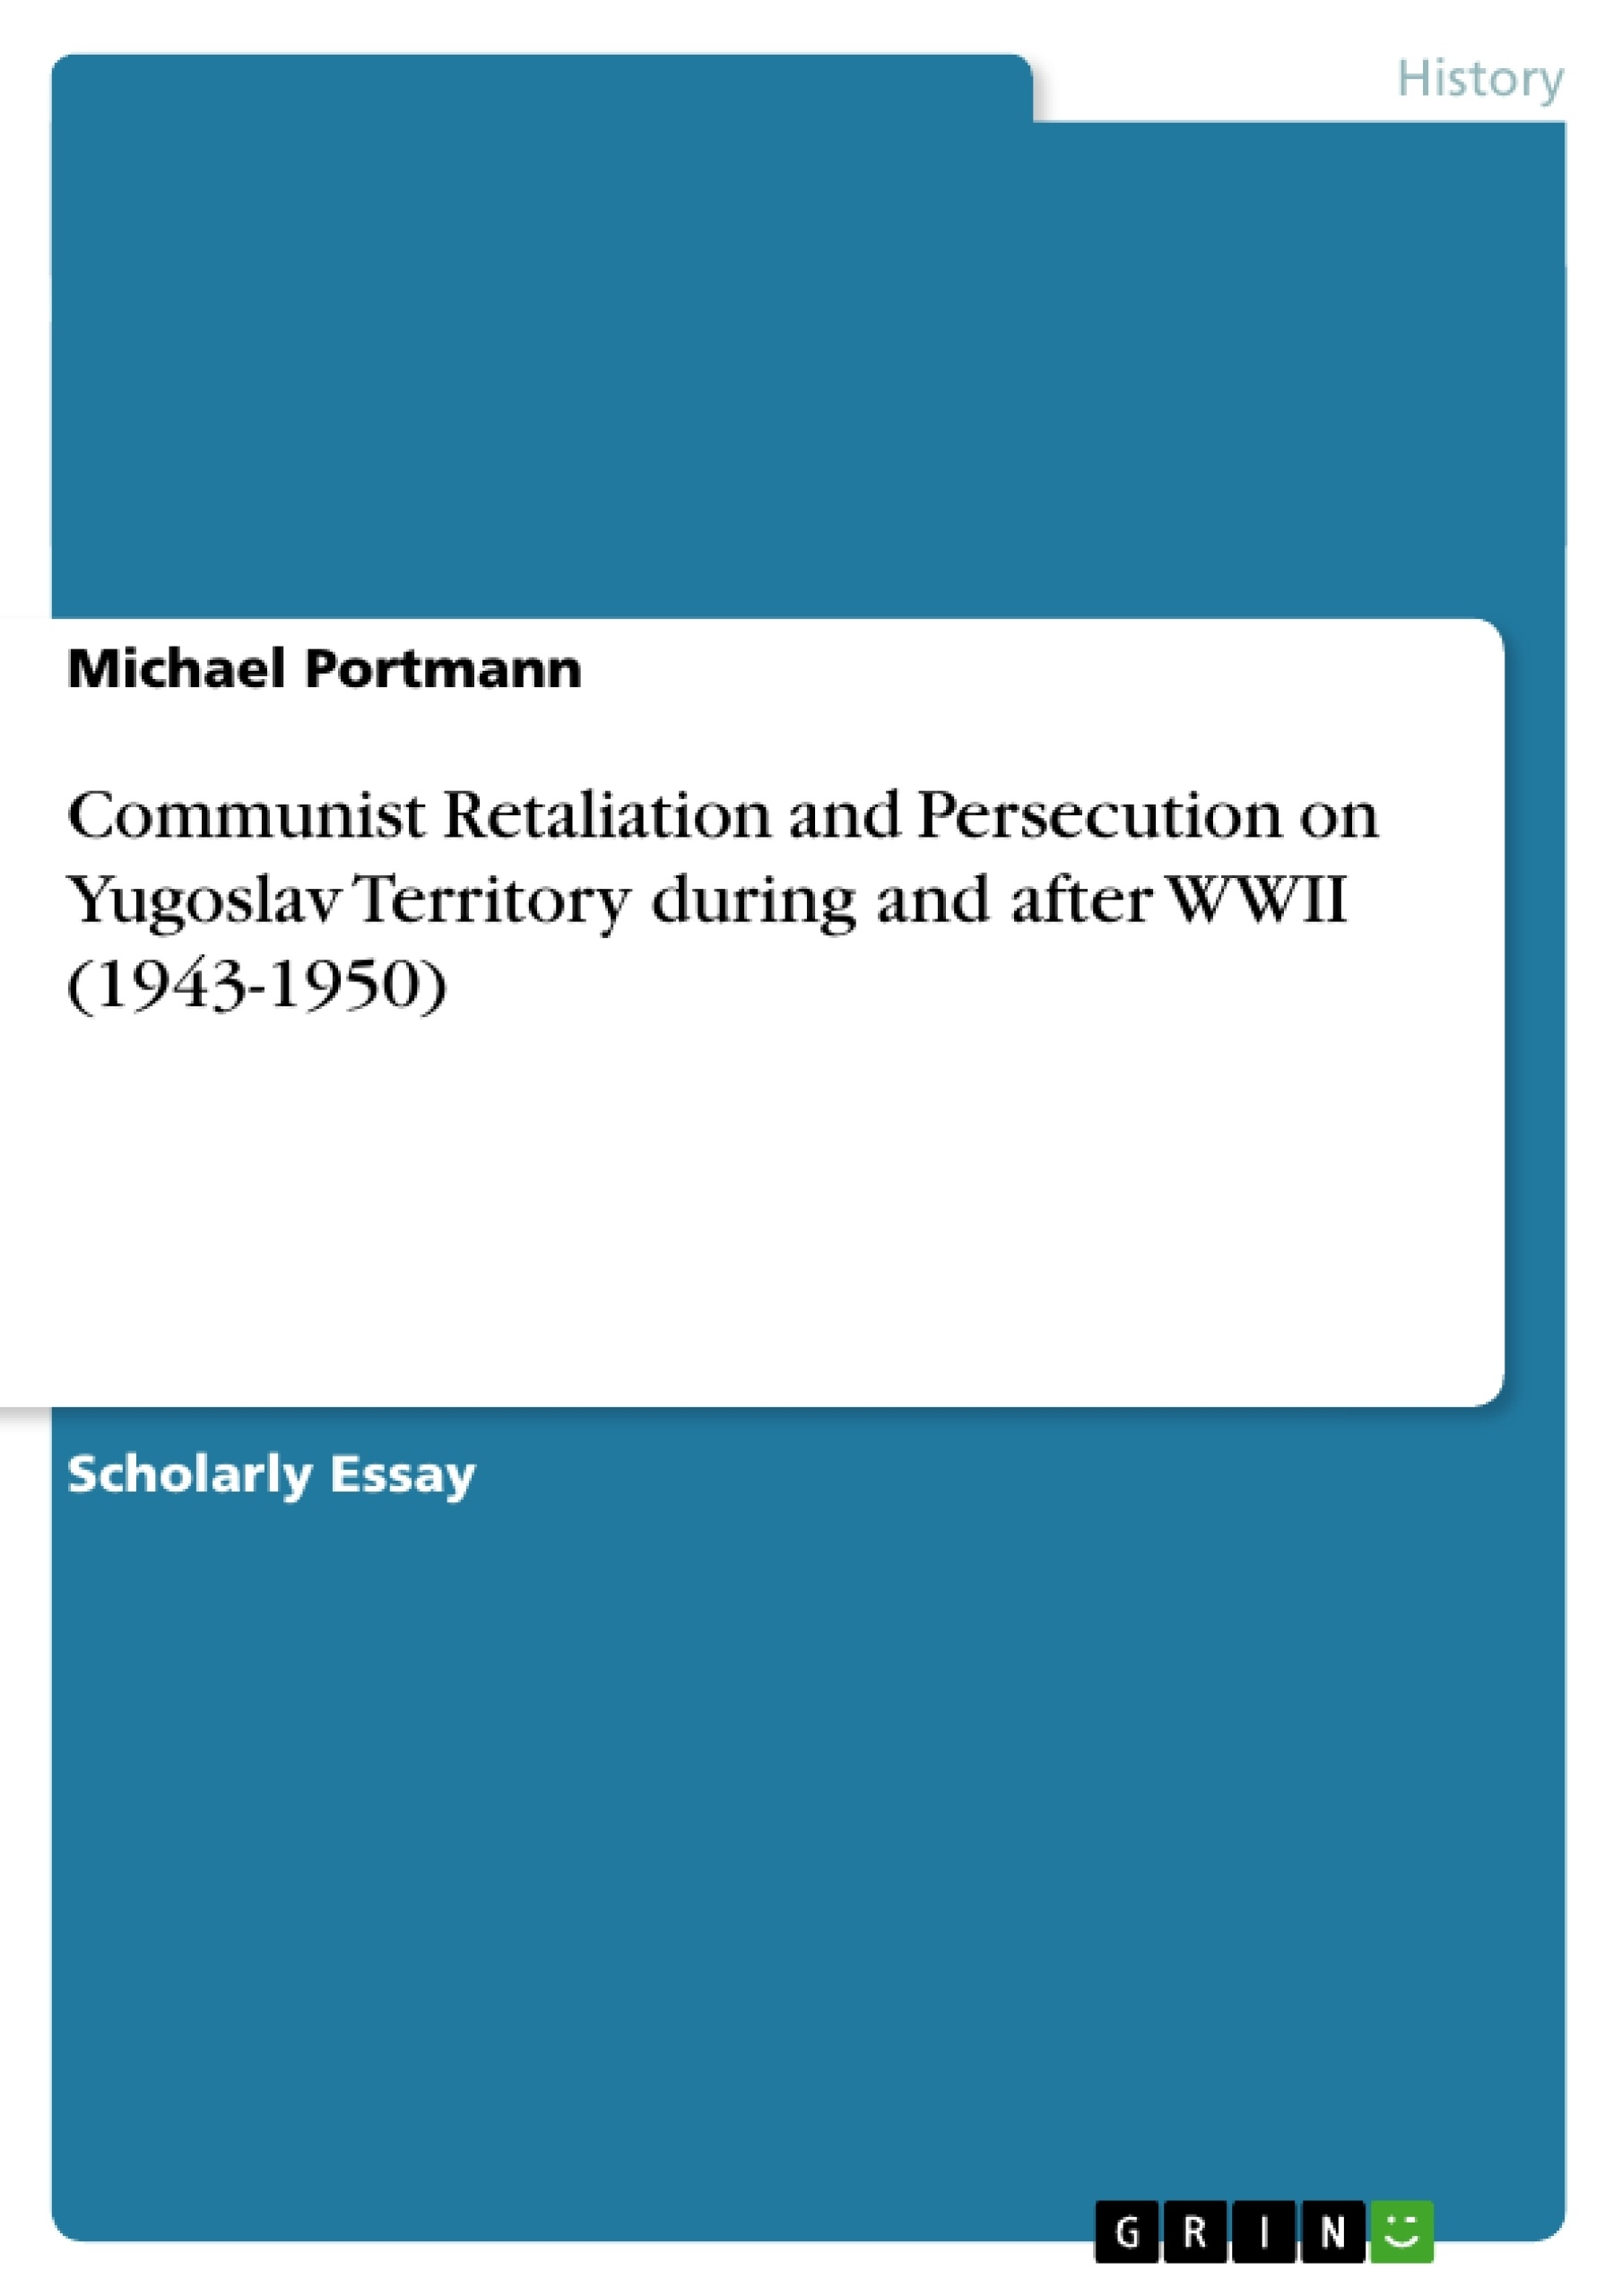 Title: Communist Retaliation and Persecution on Yugoslav Territory during and after WWII (1943-1950)